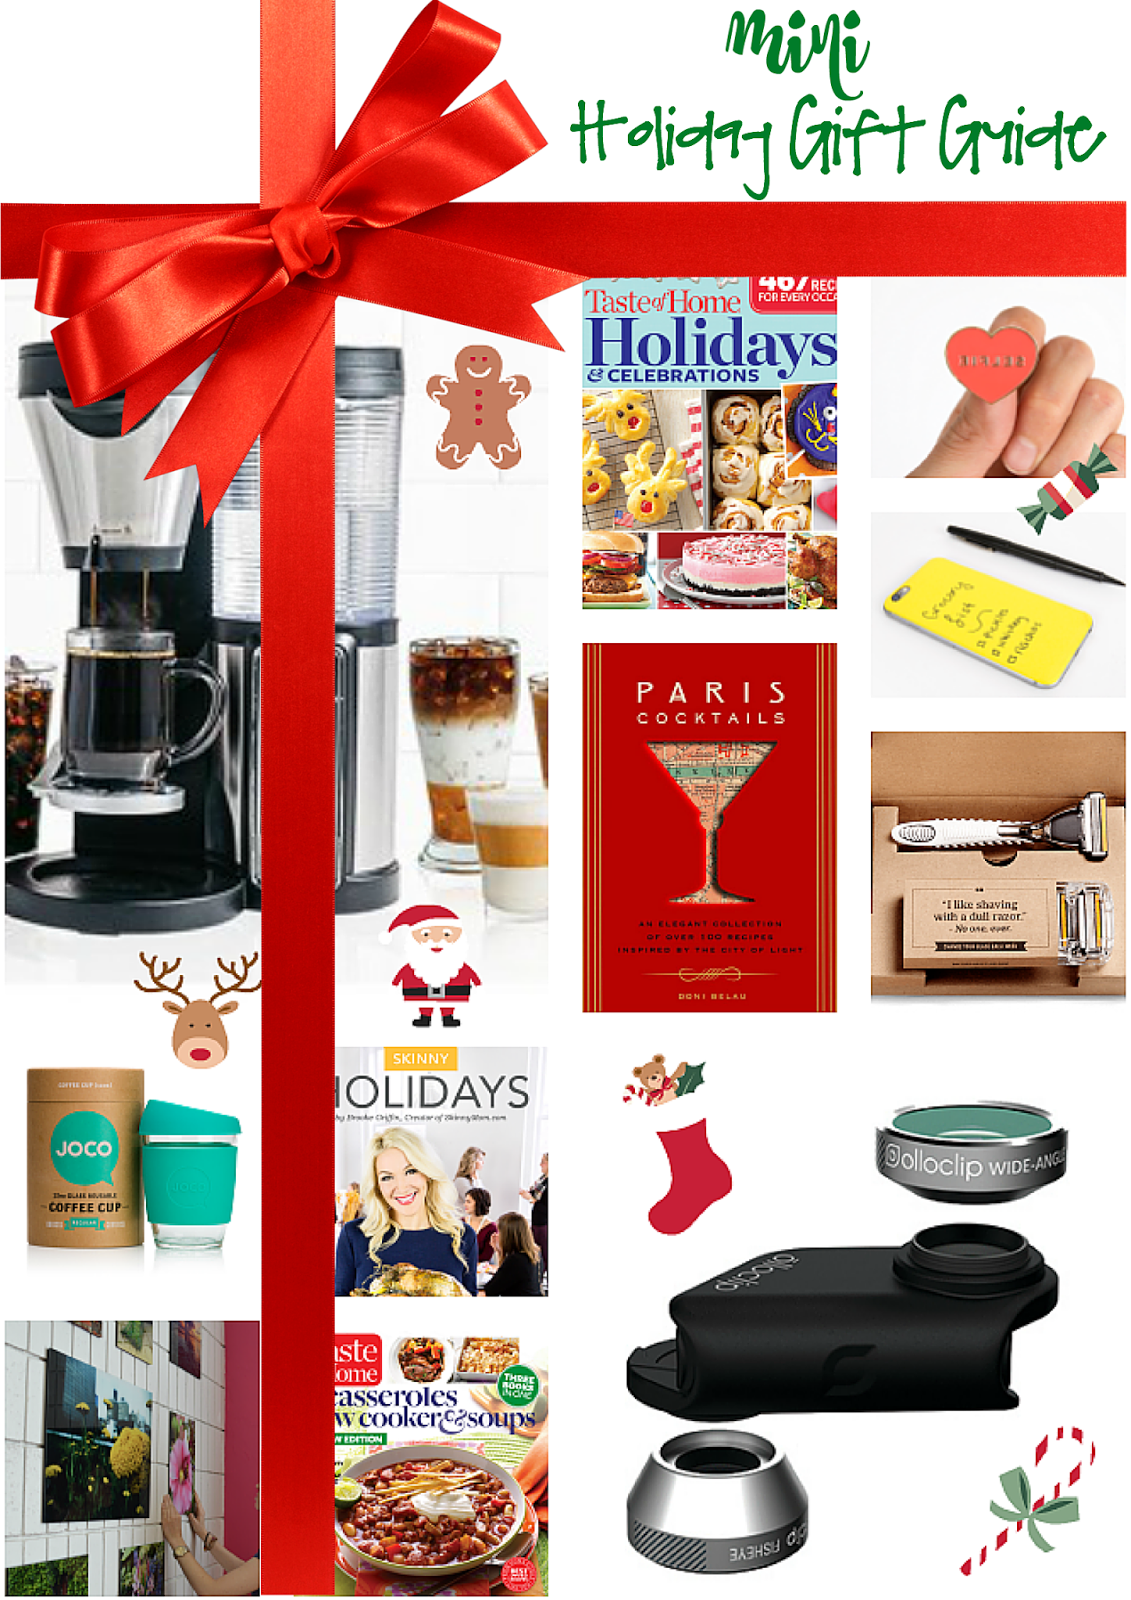 Holiday Gift Guide 2015 - mini guide for him and her! All of my favorites for the upcoming Christmas holiday season.